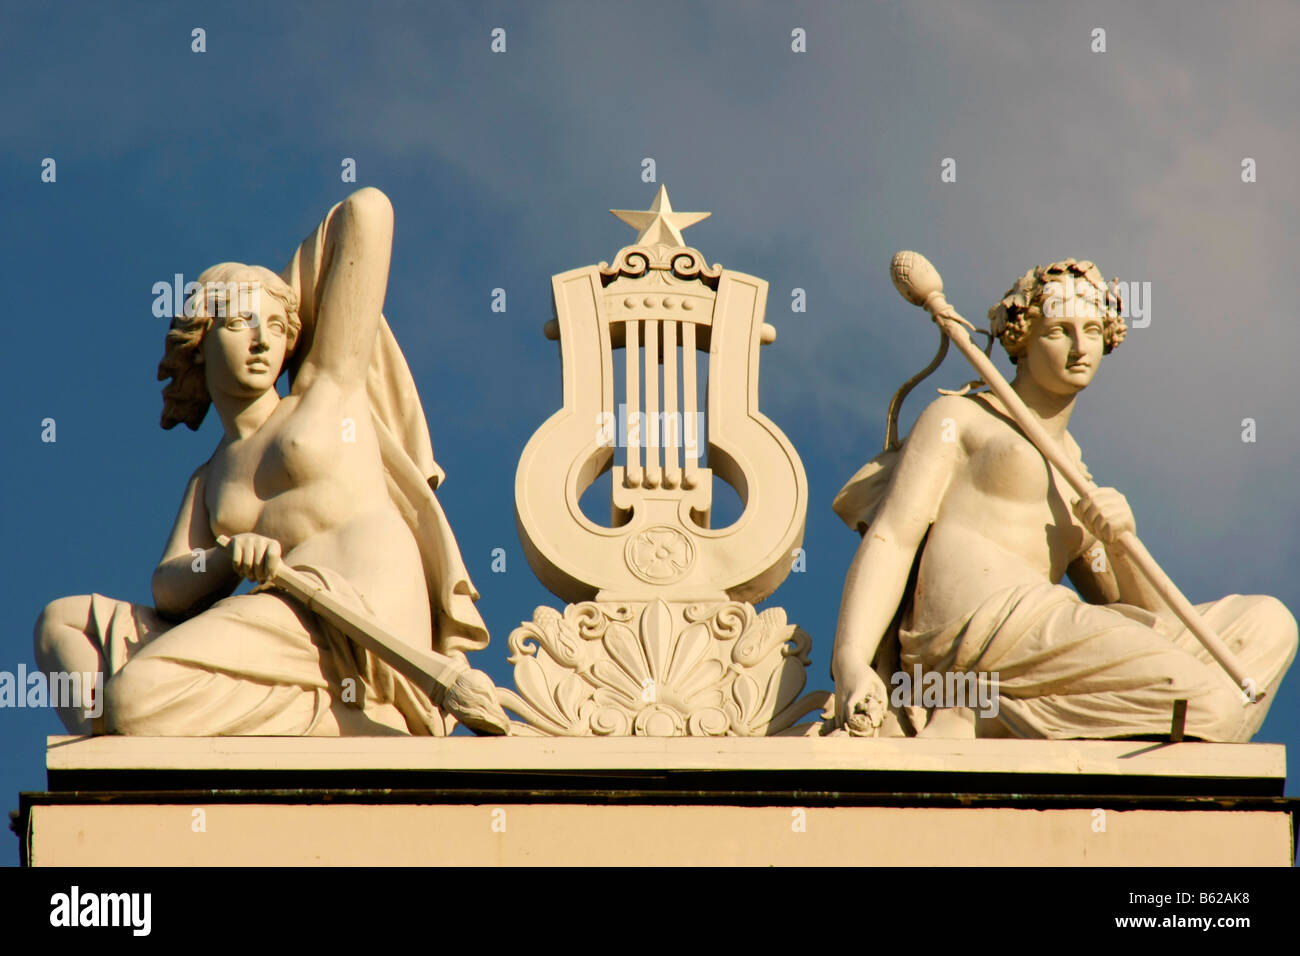 Statues on top of the National Opera House in Riga, Latvia, Baltic states - Stock Image